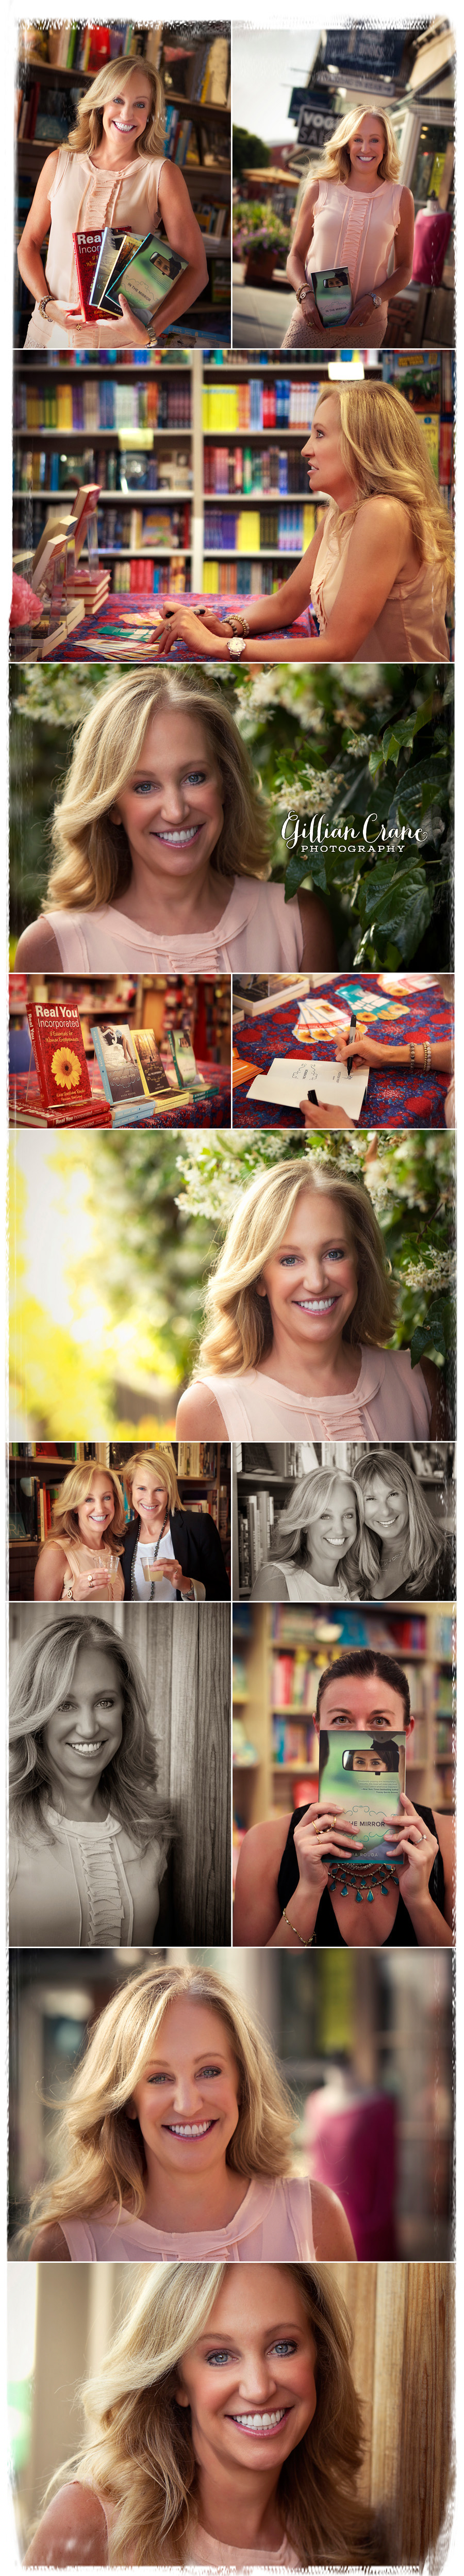 gillian-crane-laguna-beach-orange-county-event-photographers